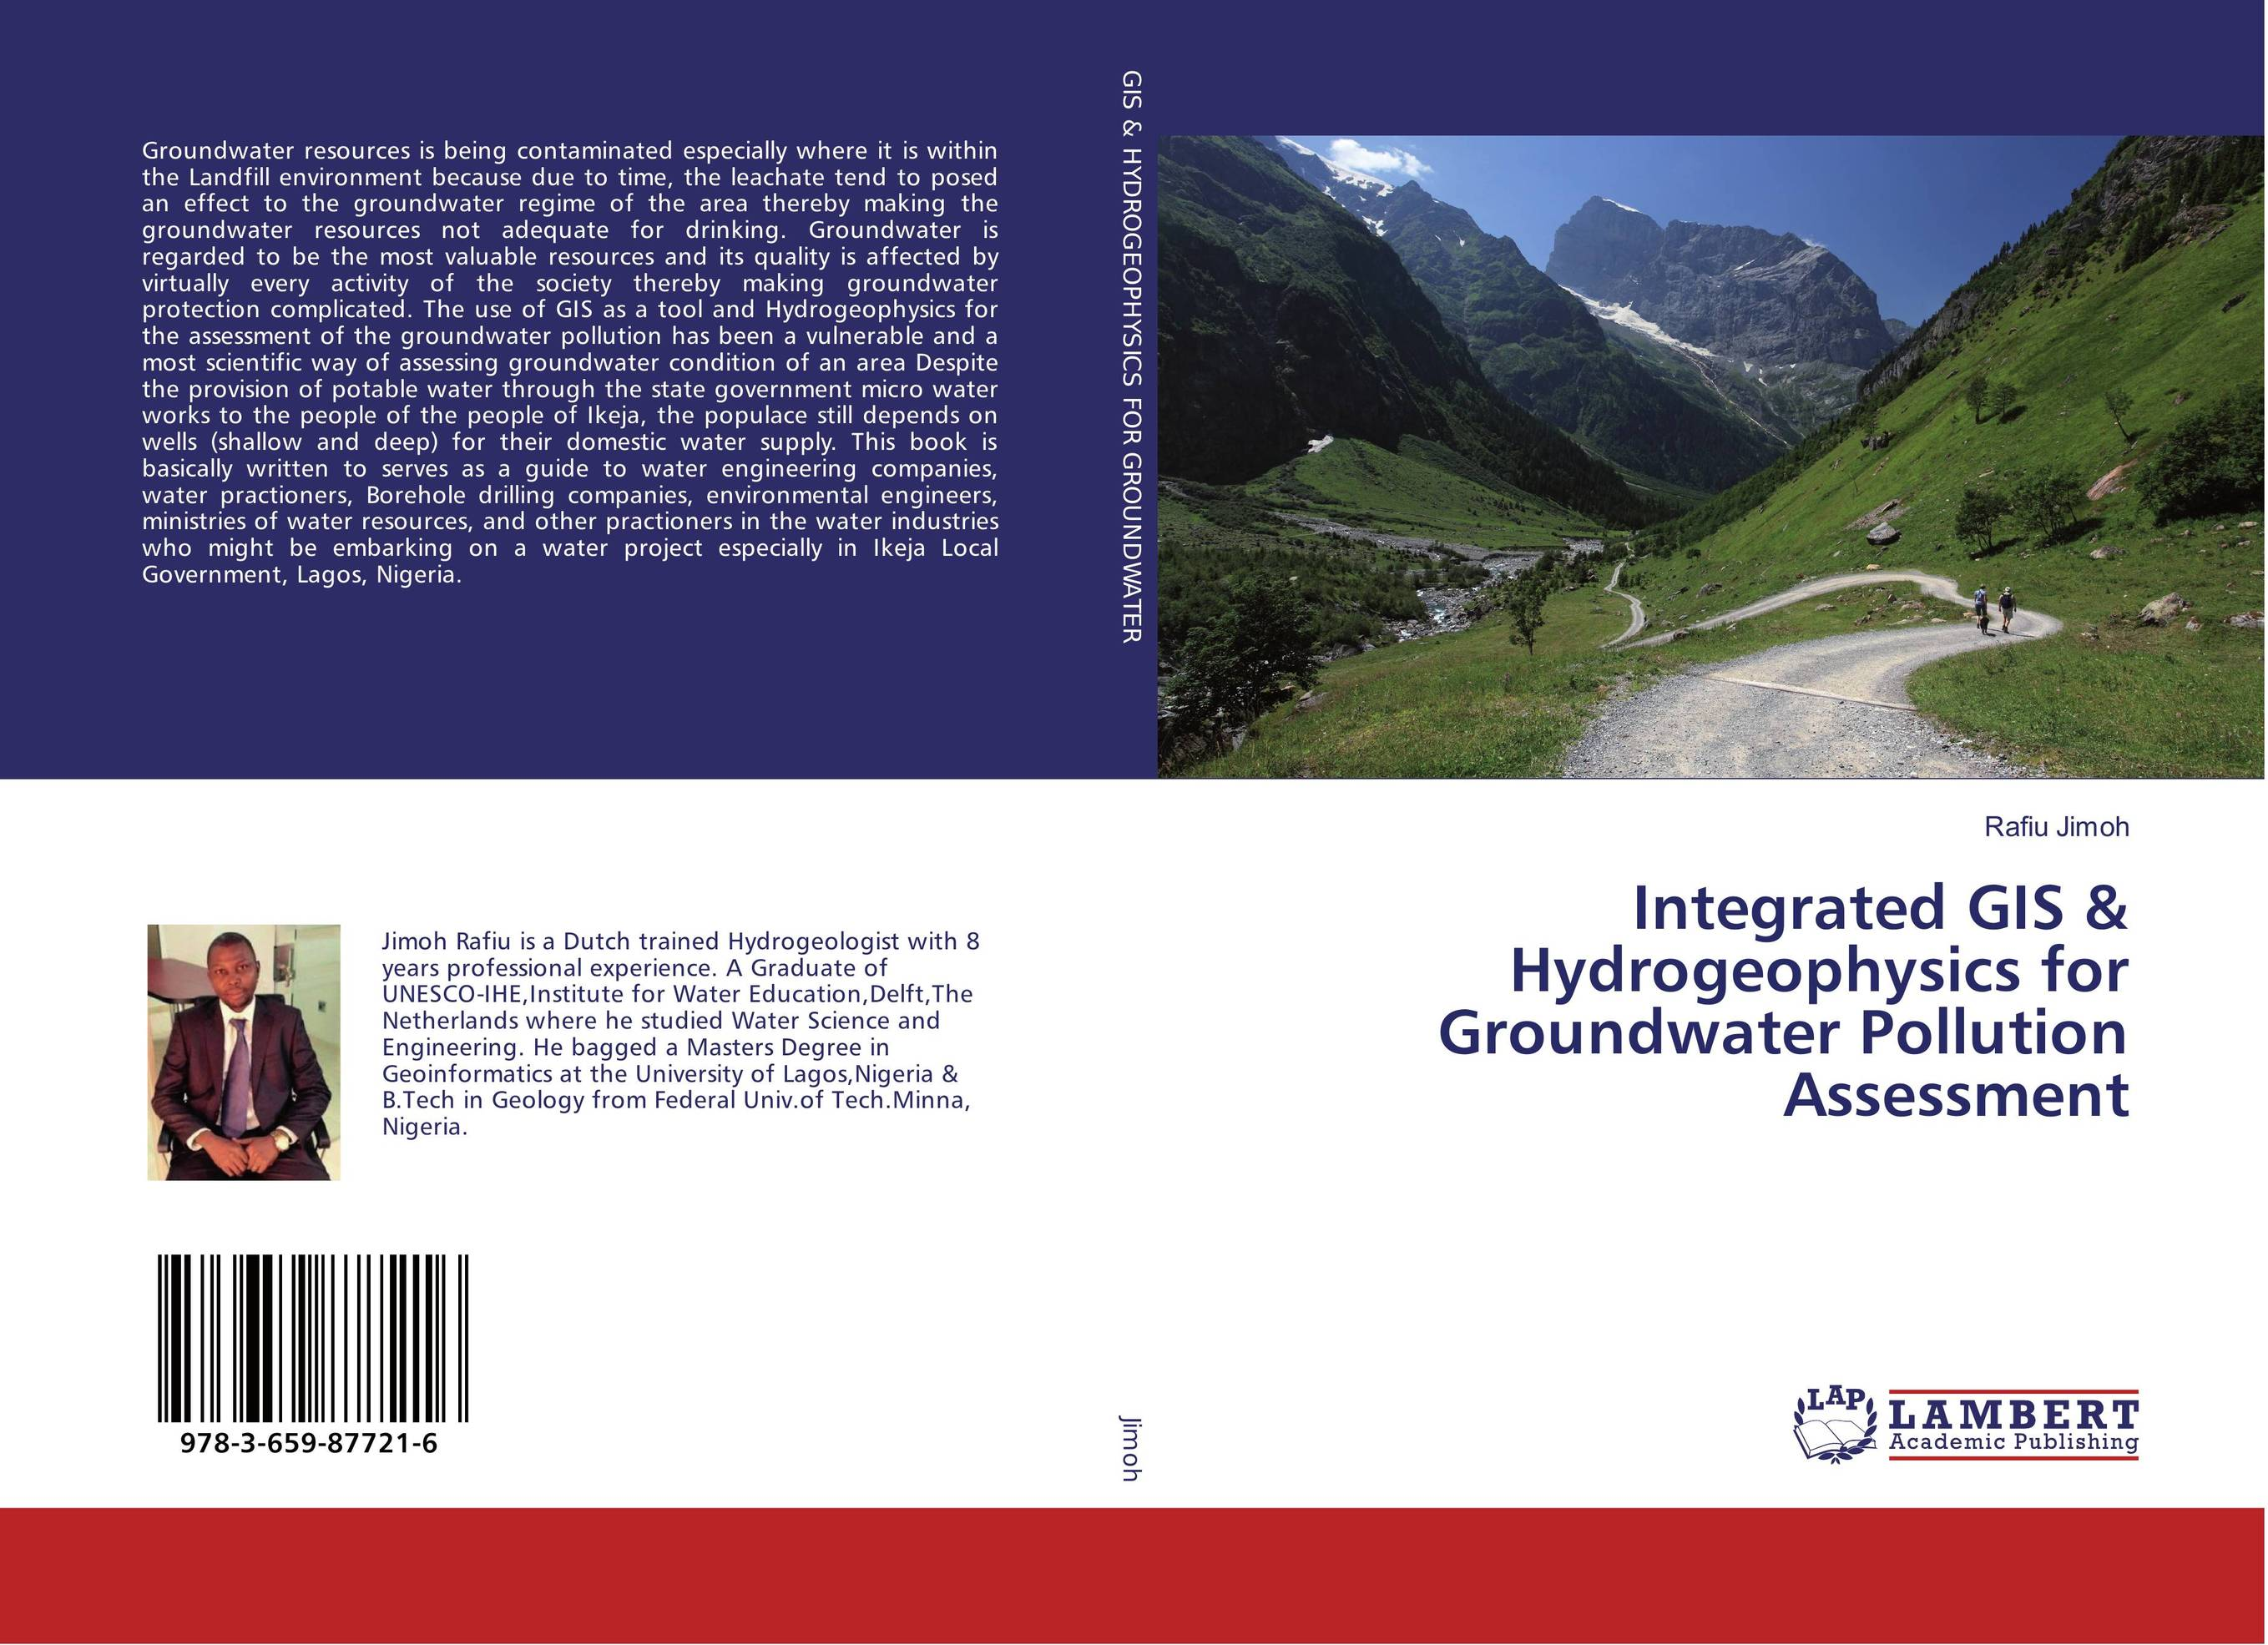 Integrated GIS & Hydrogeophysics for Groundwater Pollution Assessment